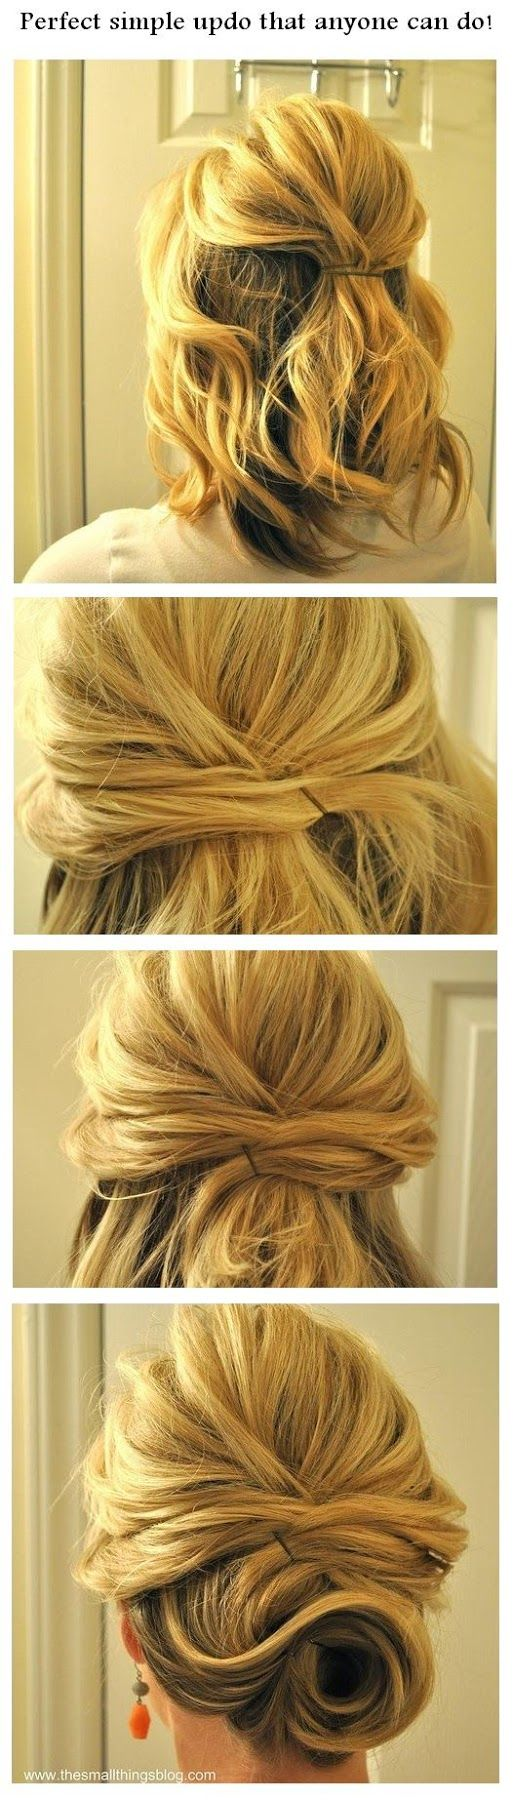 10 amazing step-by-step hairstyles for medium-length hair | indian